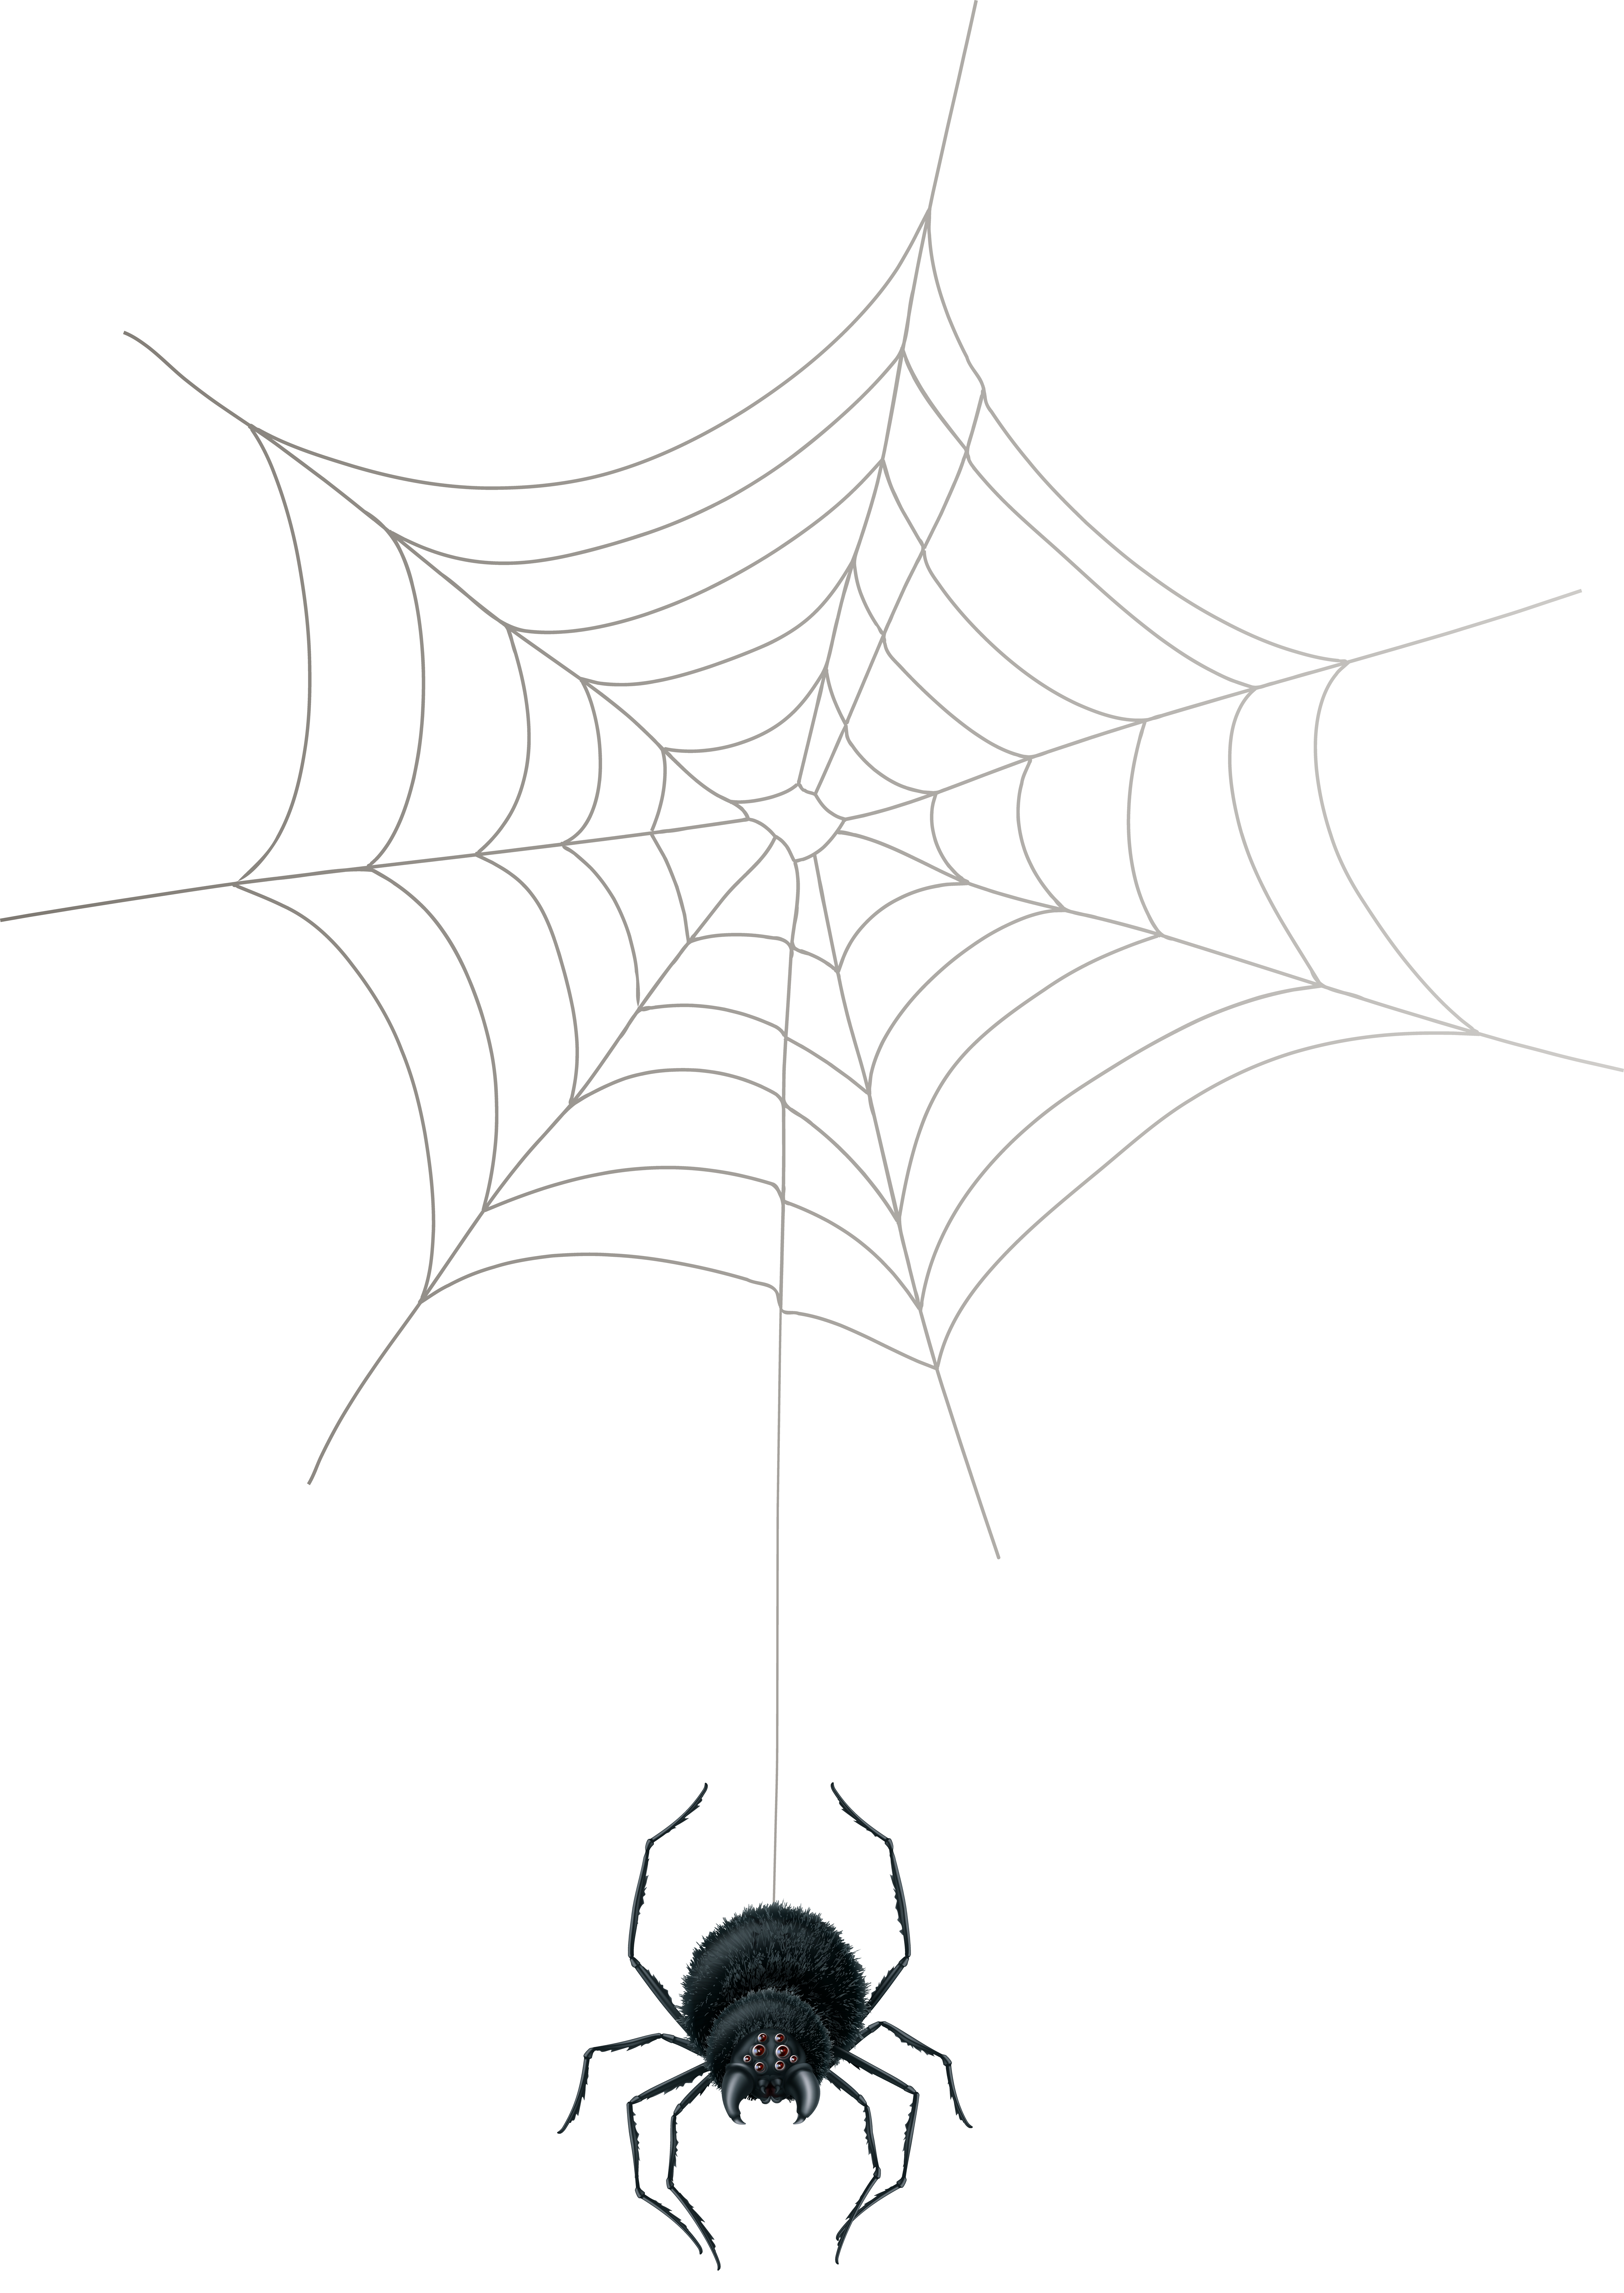 image transparent Png clip art gallery. Clipart spider web